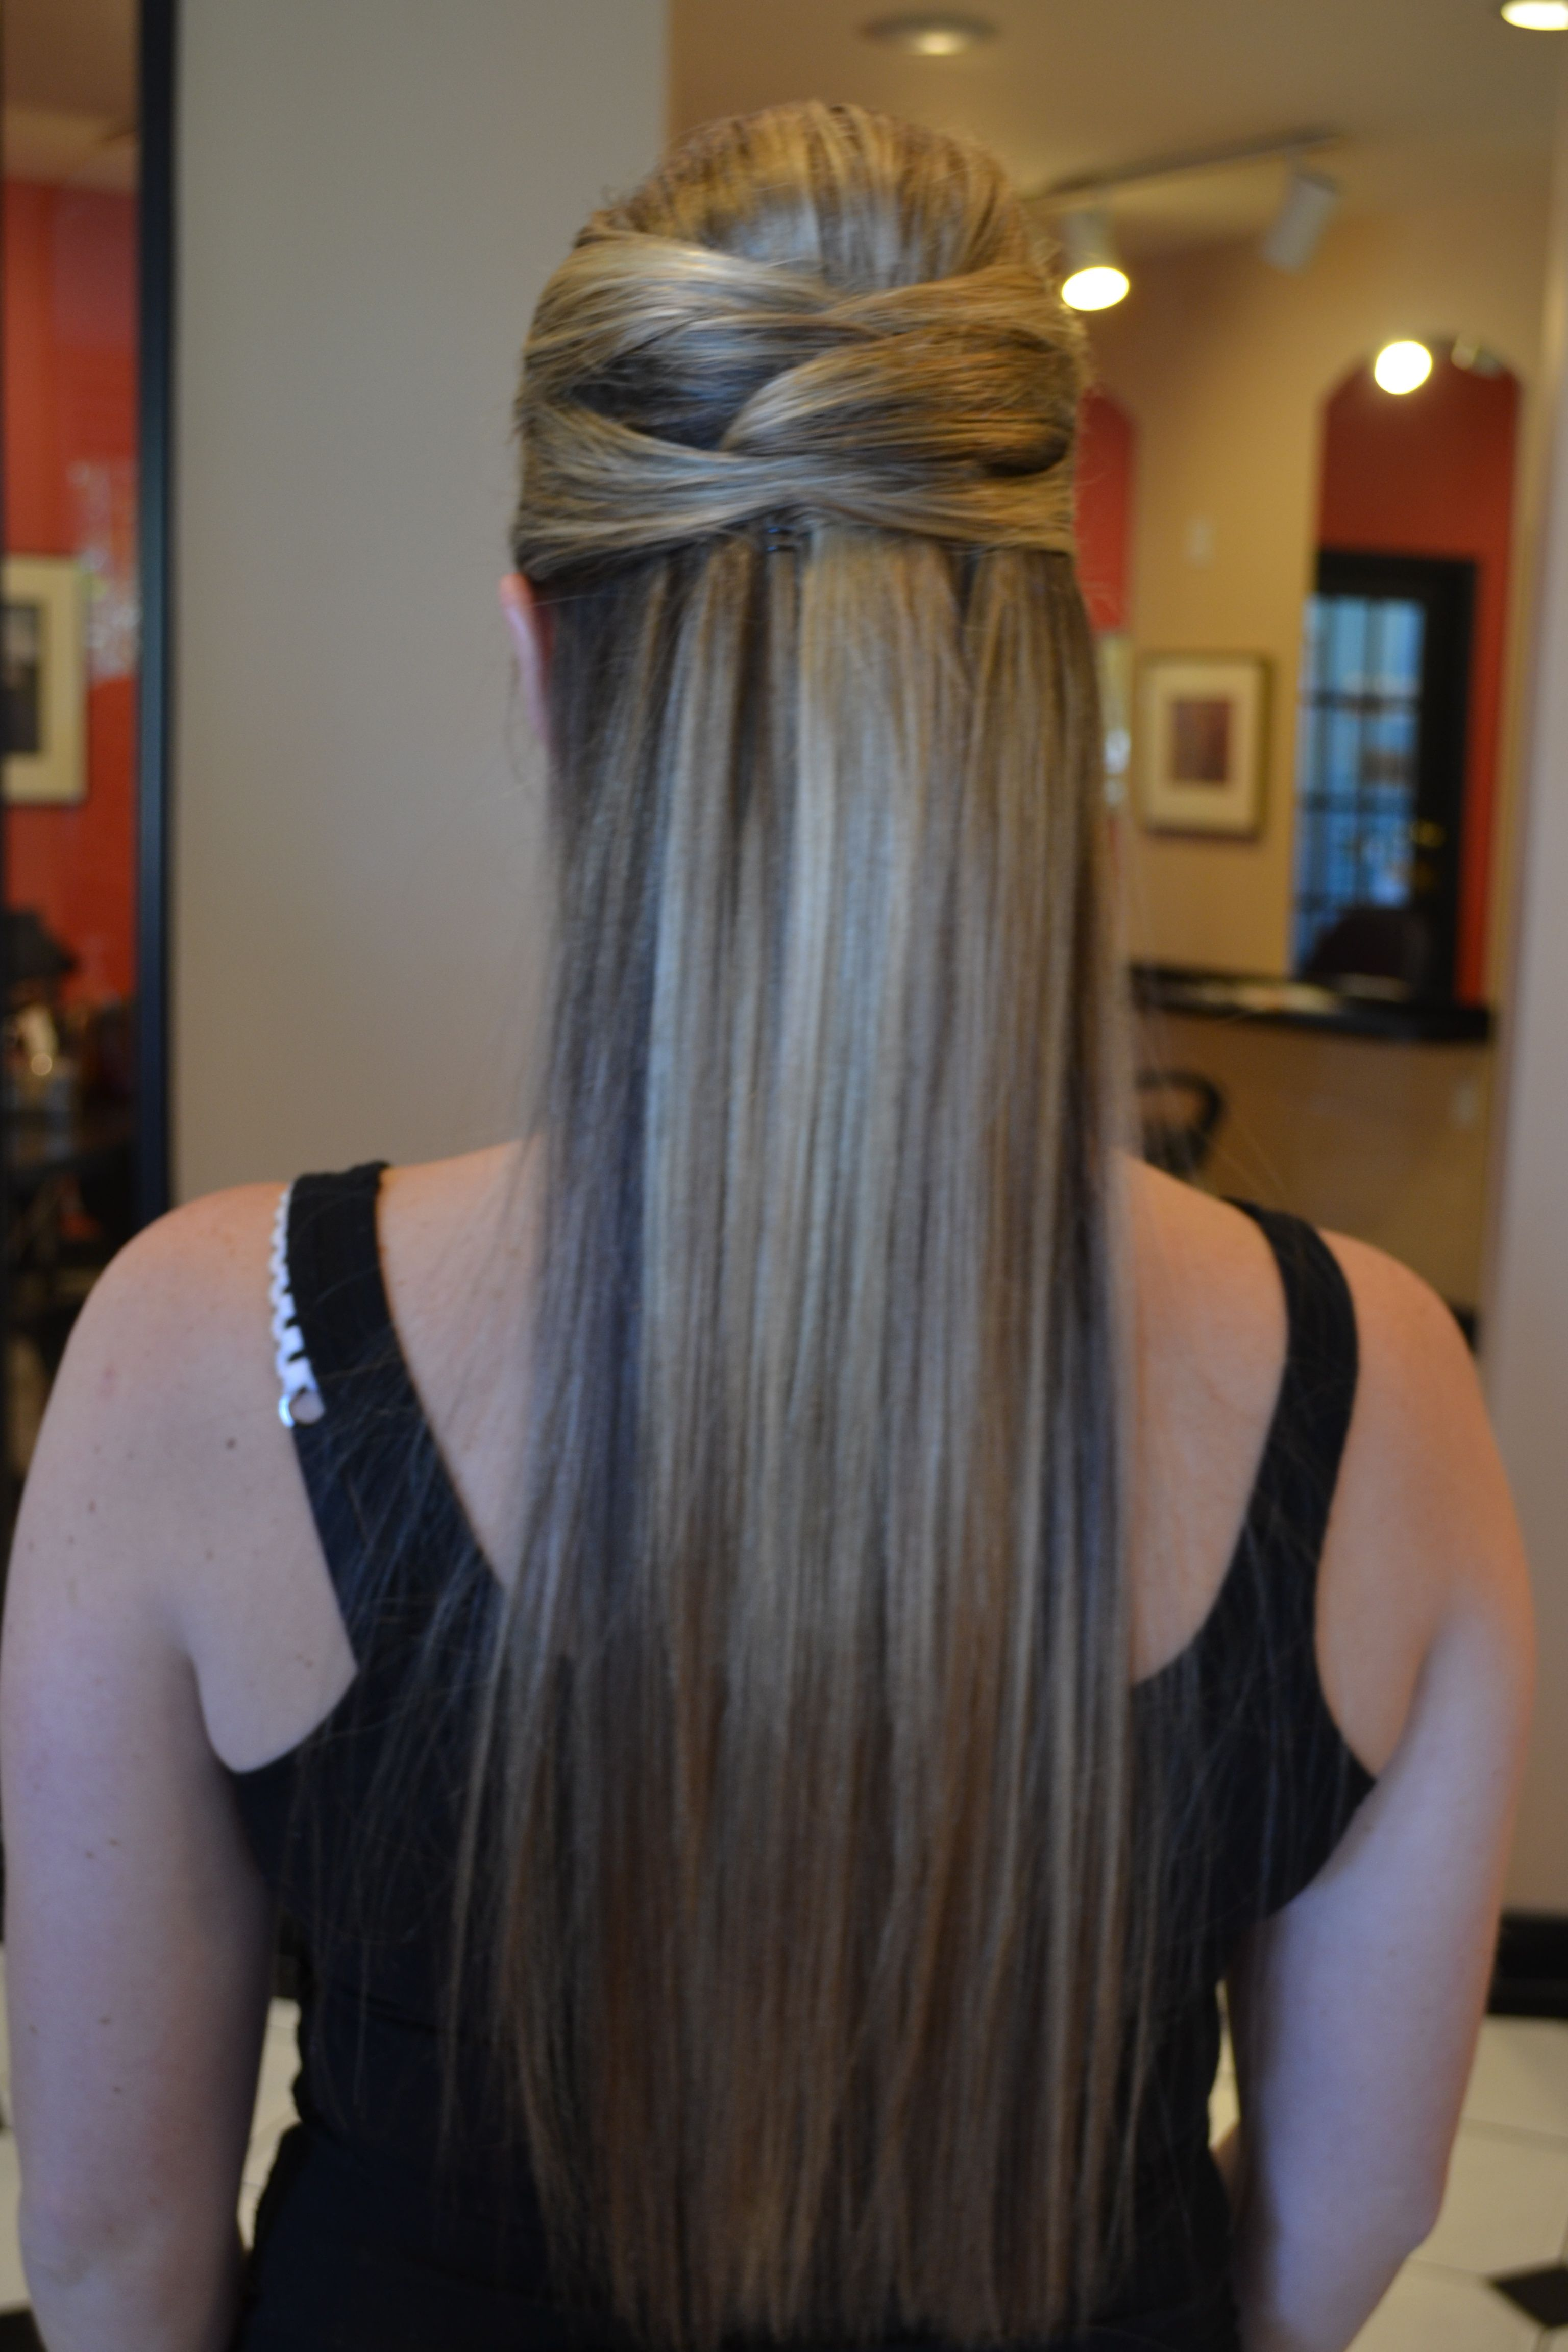 Hairstyles For Long N Straight Hairs Hairs Hairstyles Hairstylesforlonghair Stra Long Straight Wedding Hairstyles Straight Wedding Hair Long Straight Hair